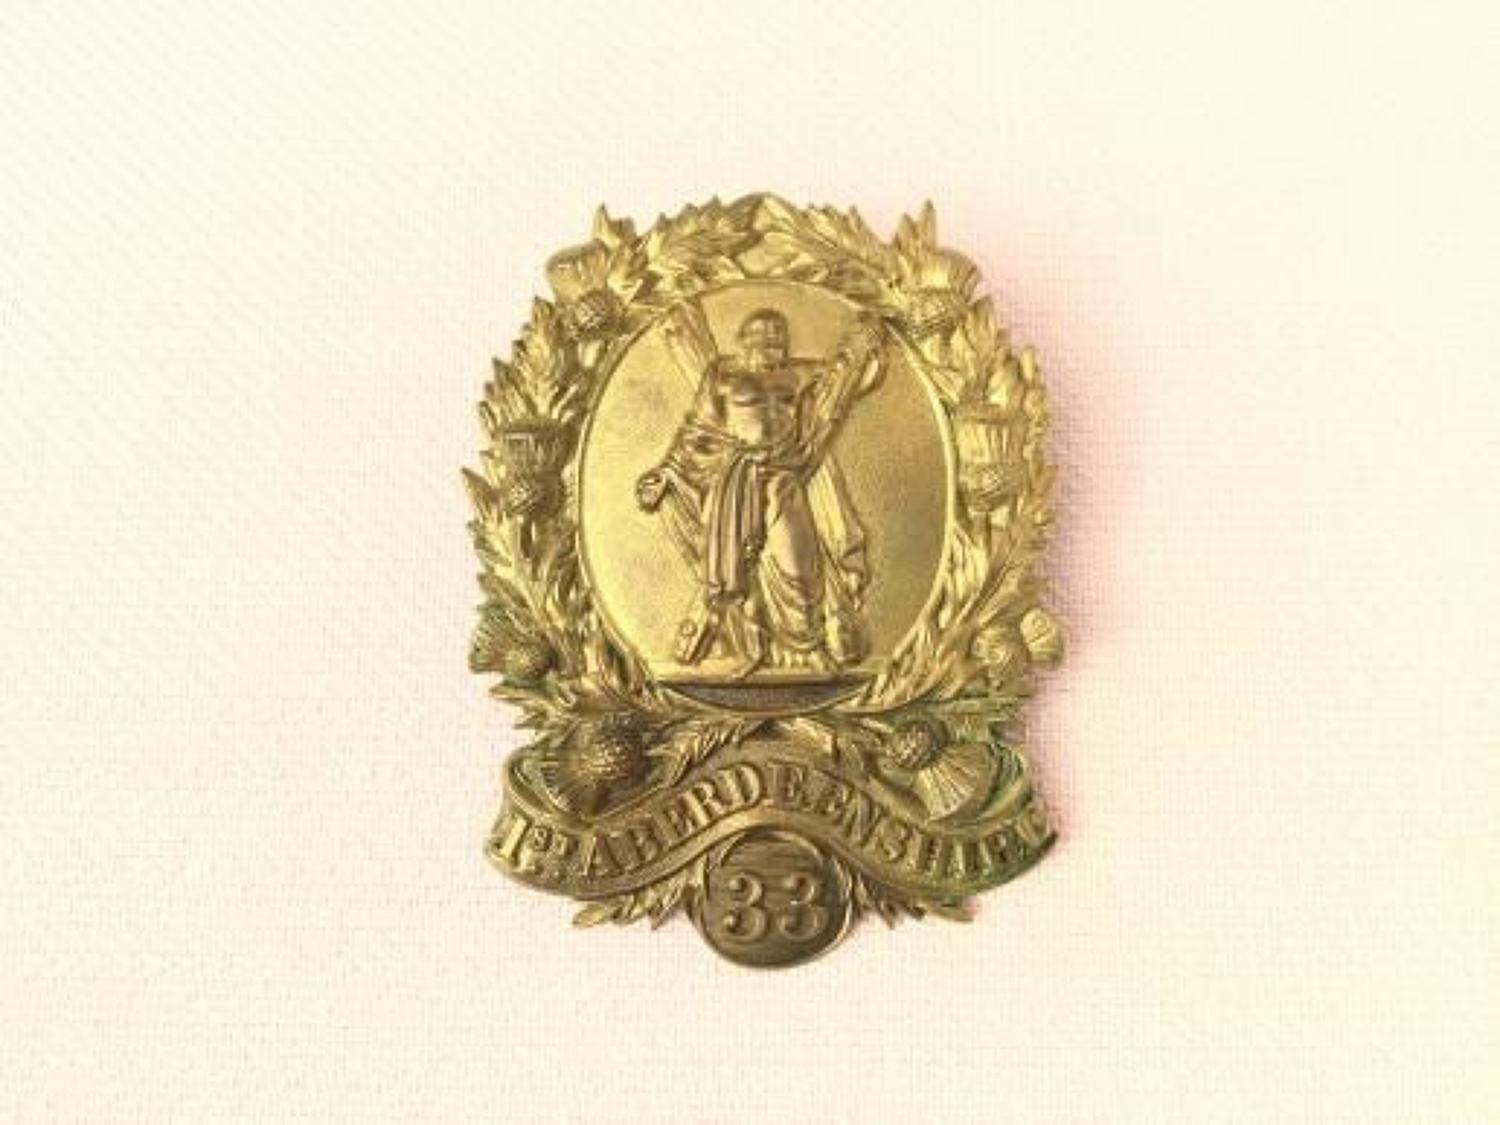 1st Aberdeenshire Rifle Volunteers ORs Cap Insignia.